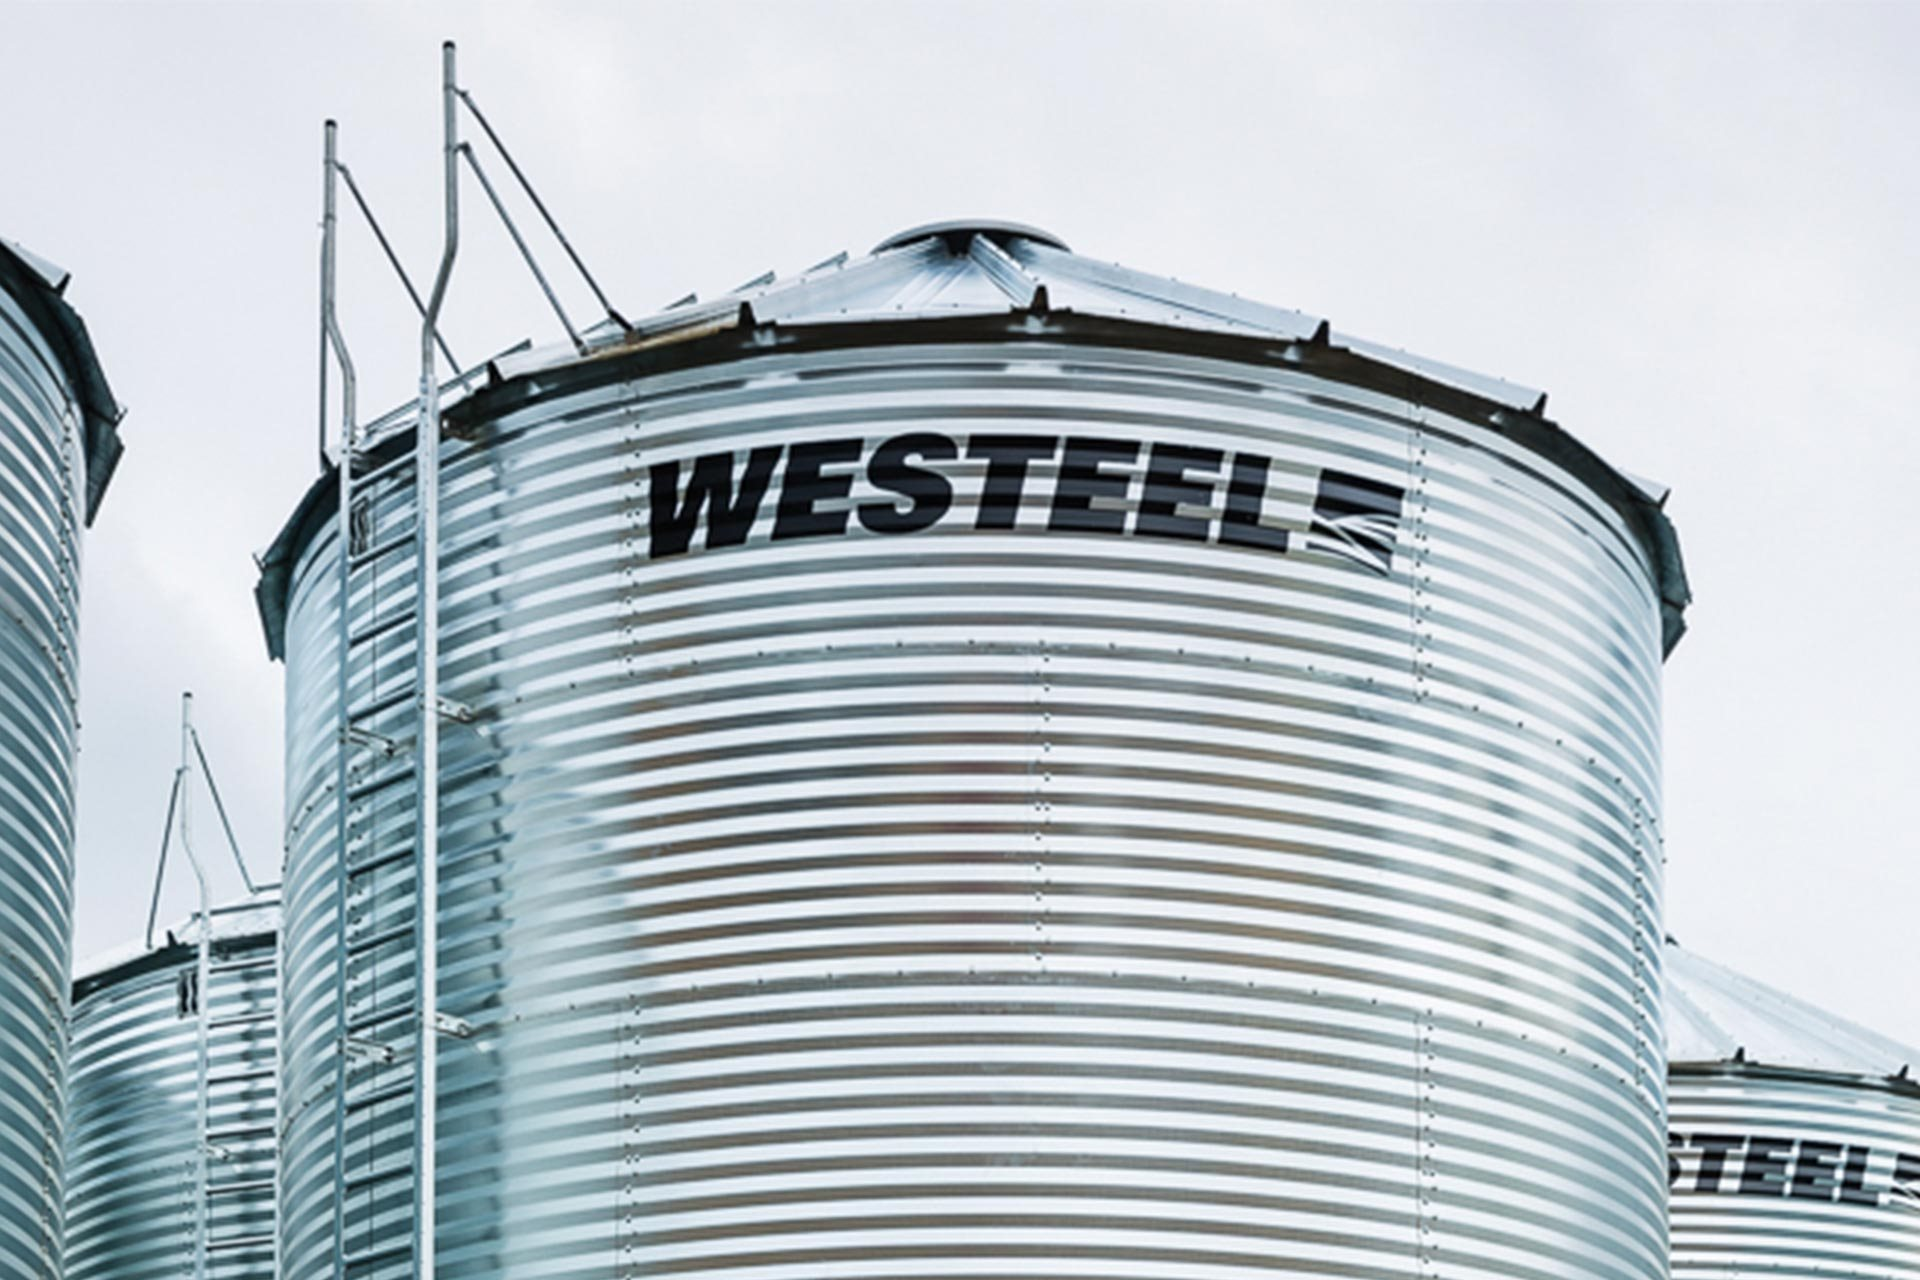 Westeel Welded Hopper Cones